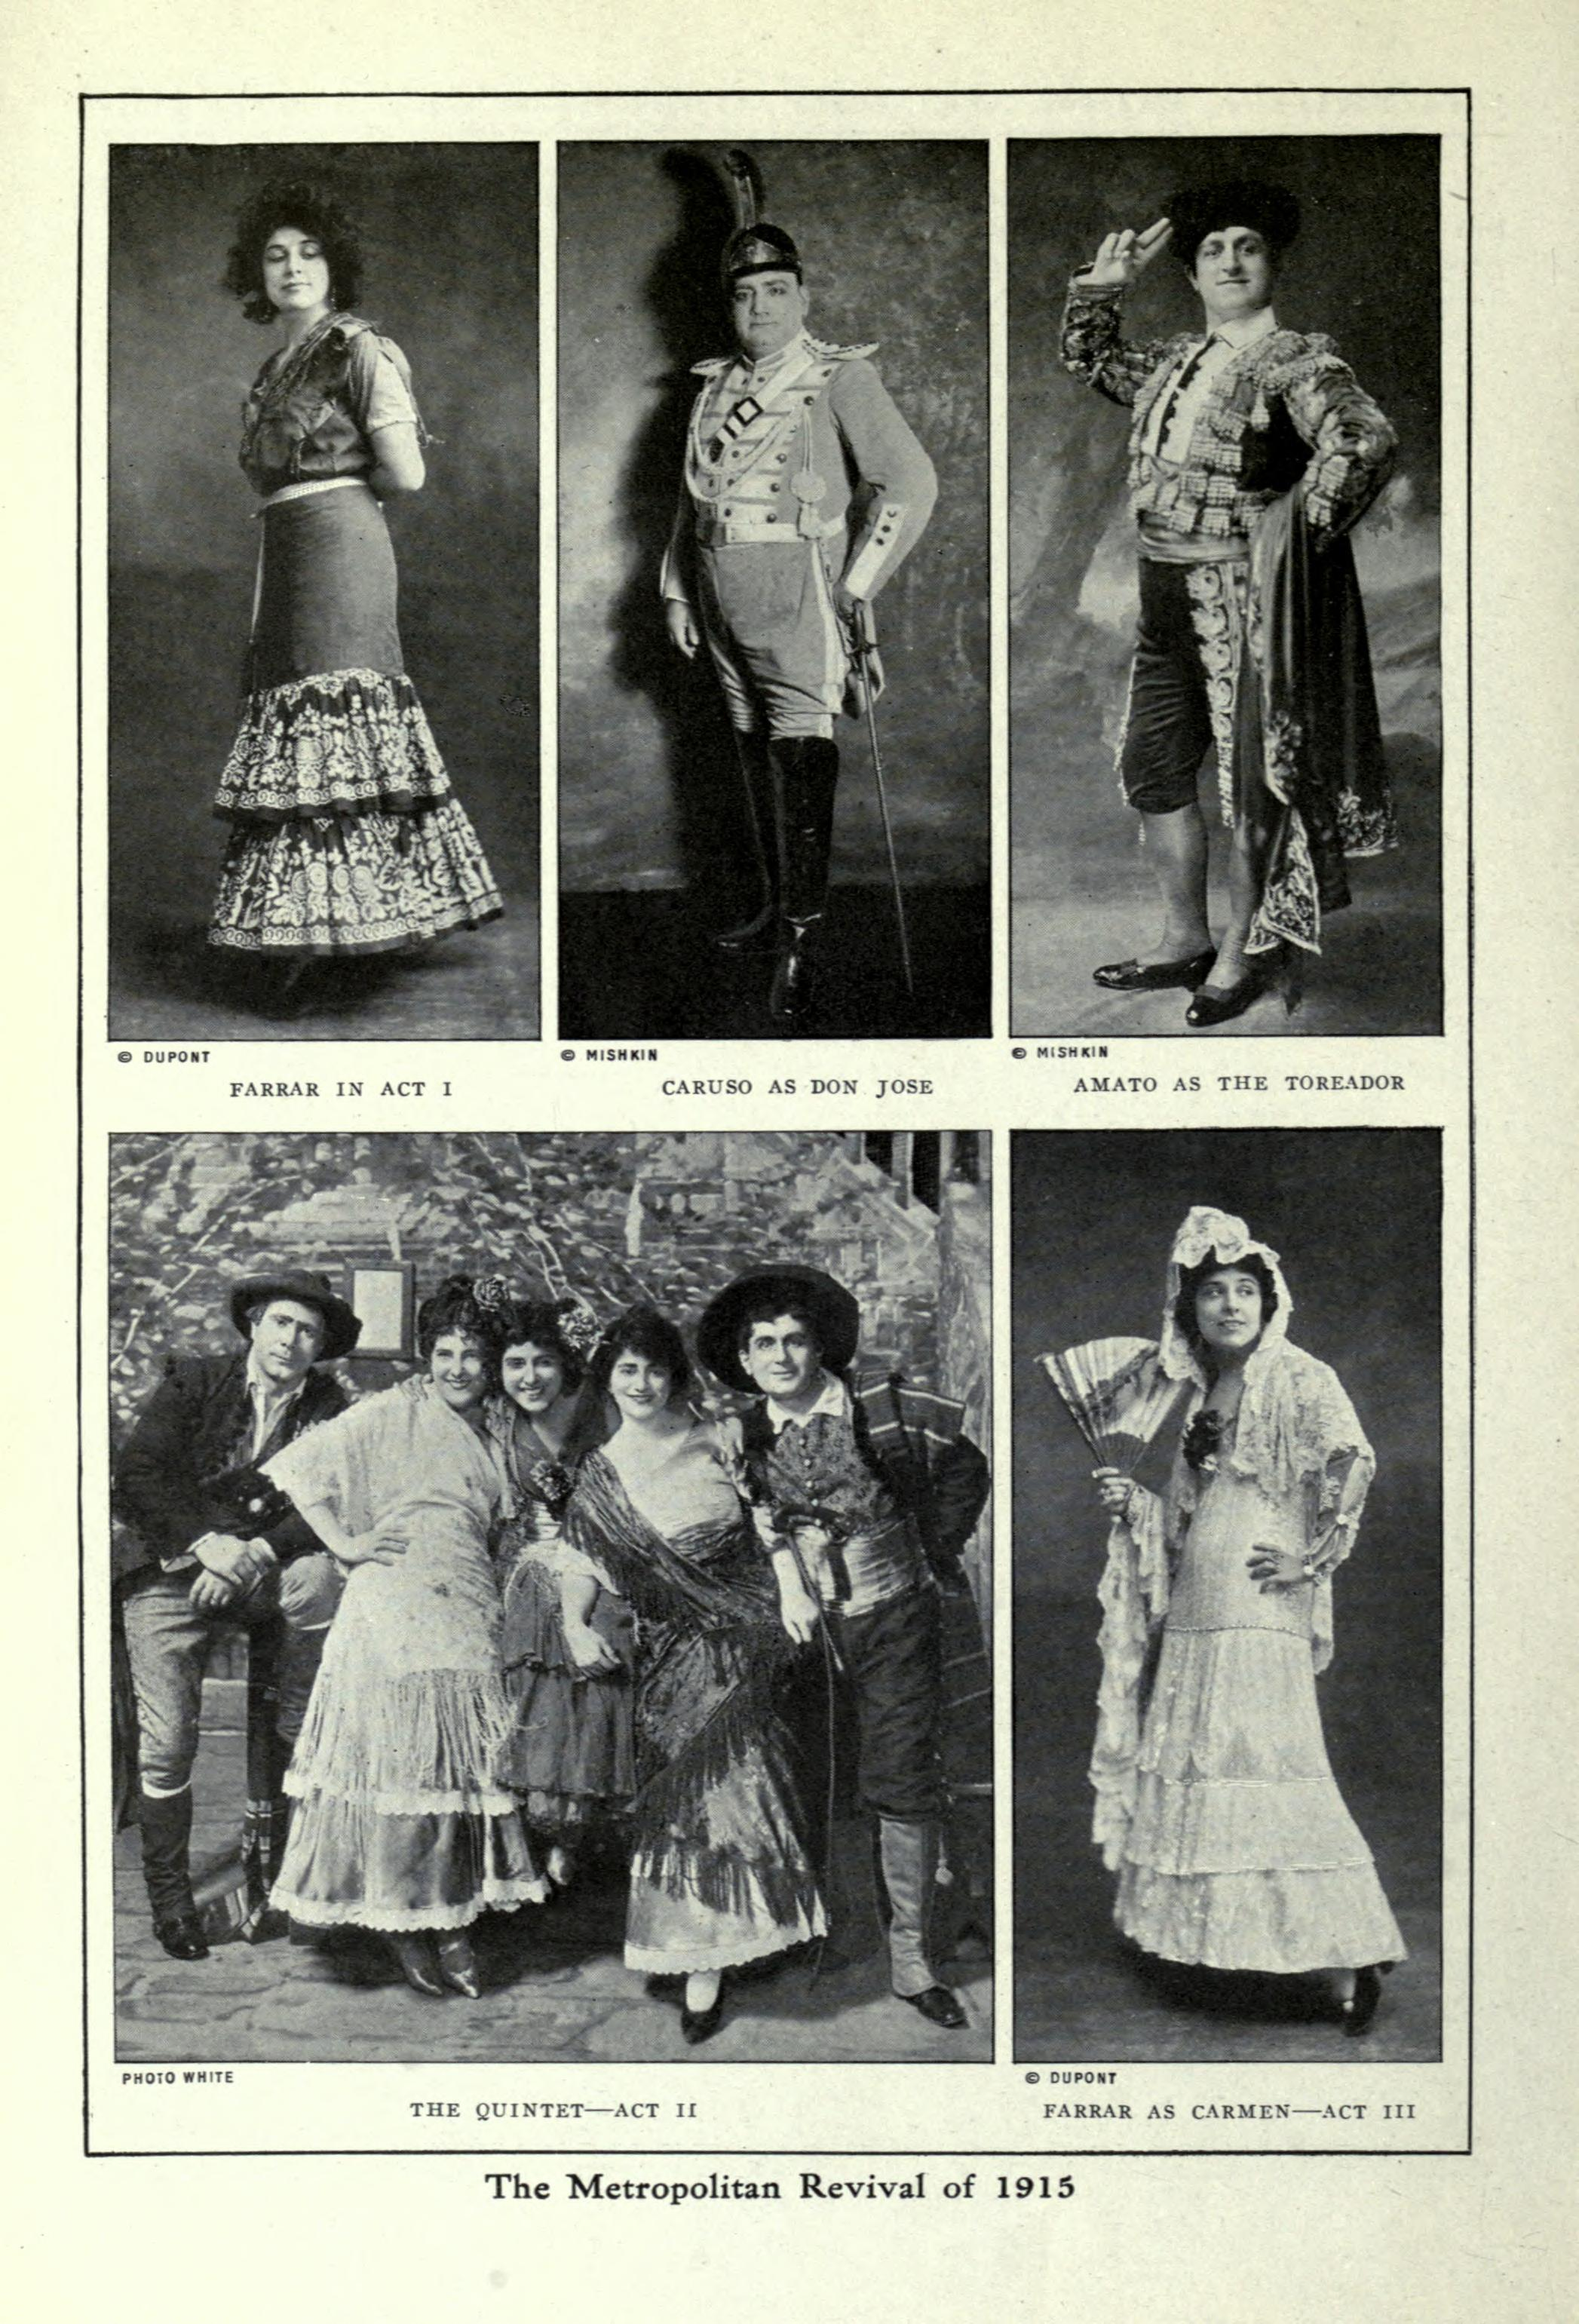 Carmen at the New York Met in 1915; a publicity photograph that shows the three principal stars: Geraldine Farrar, Enrico Caruso and Pasquale Amato